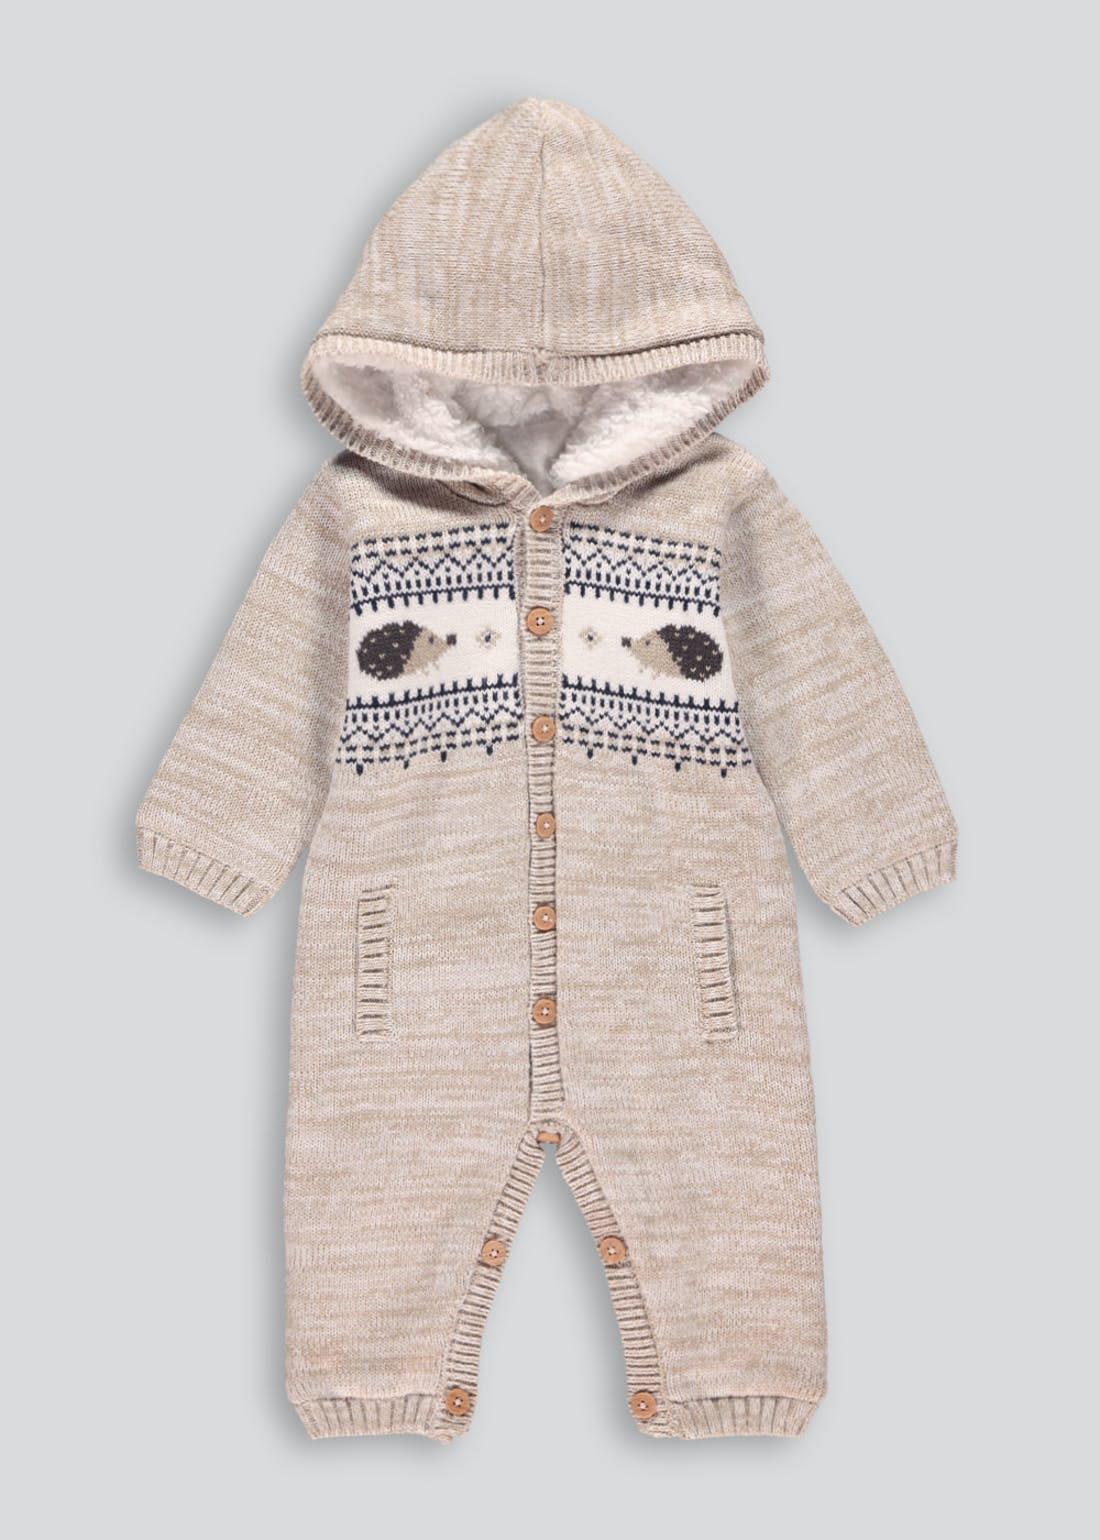 Unisex Knitted Romper (Tiny Baby-18mths)